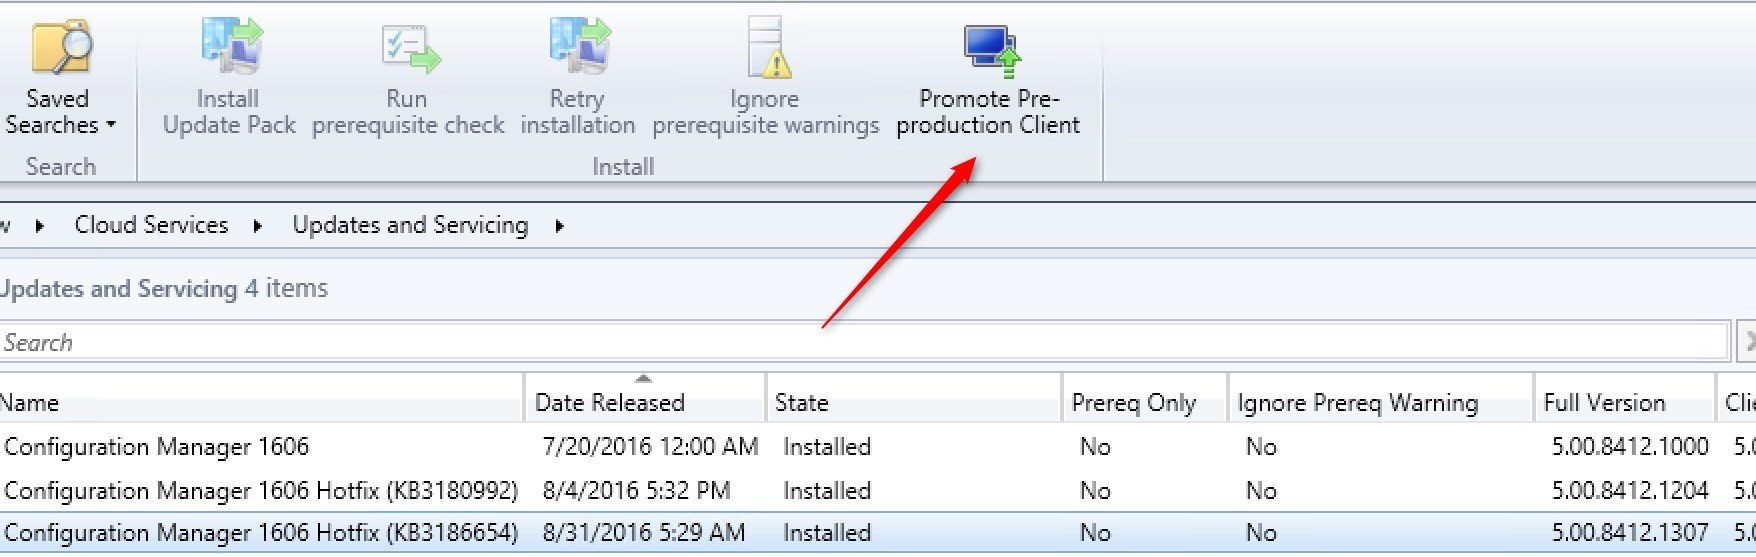 SCCM Pre-production client